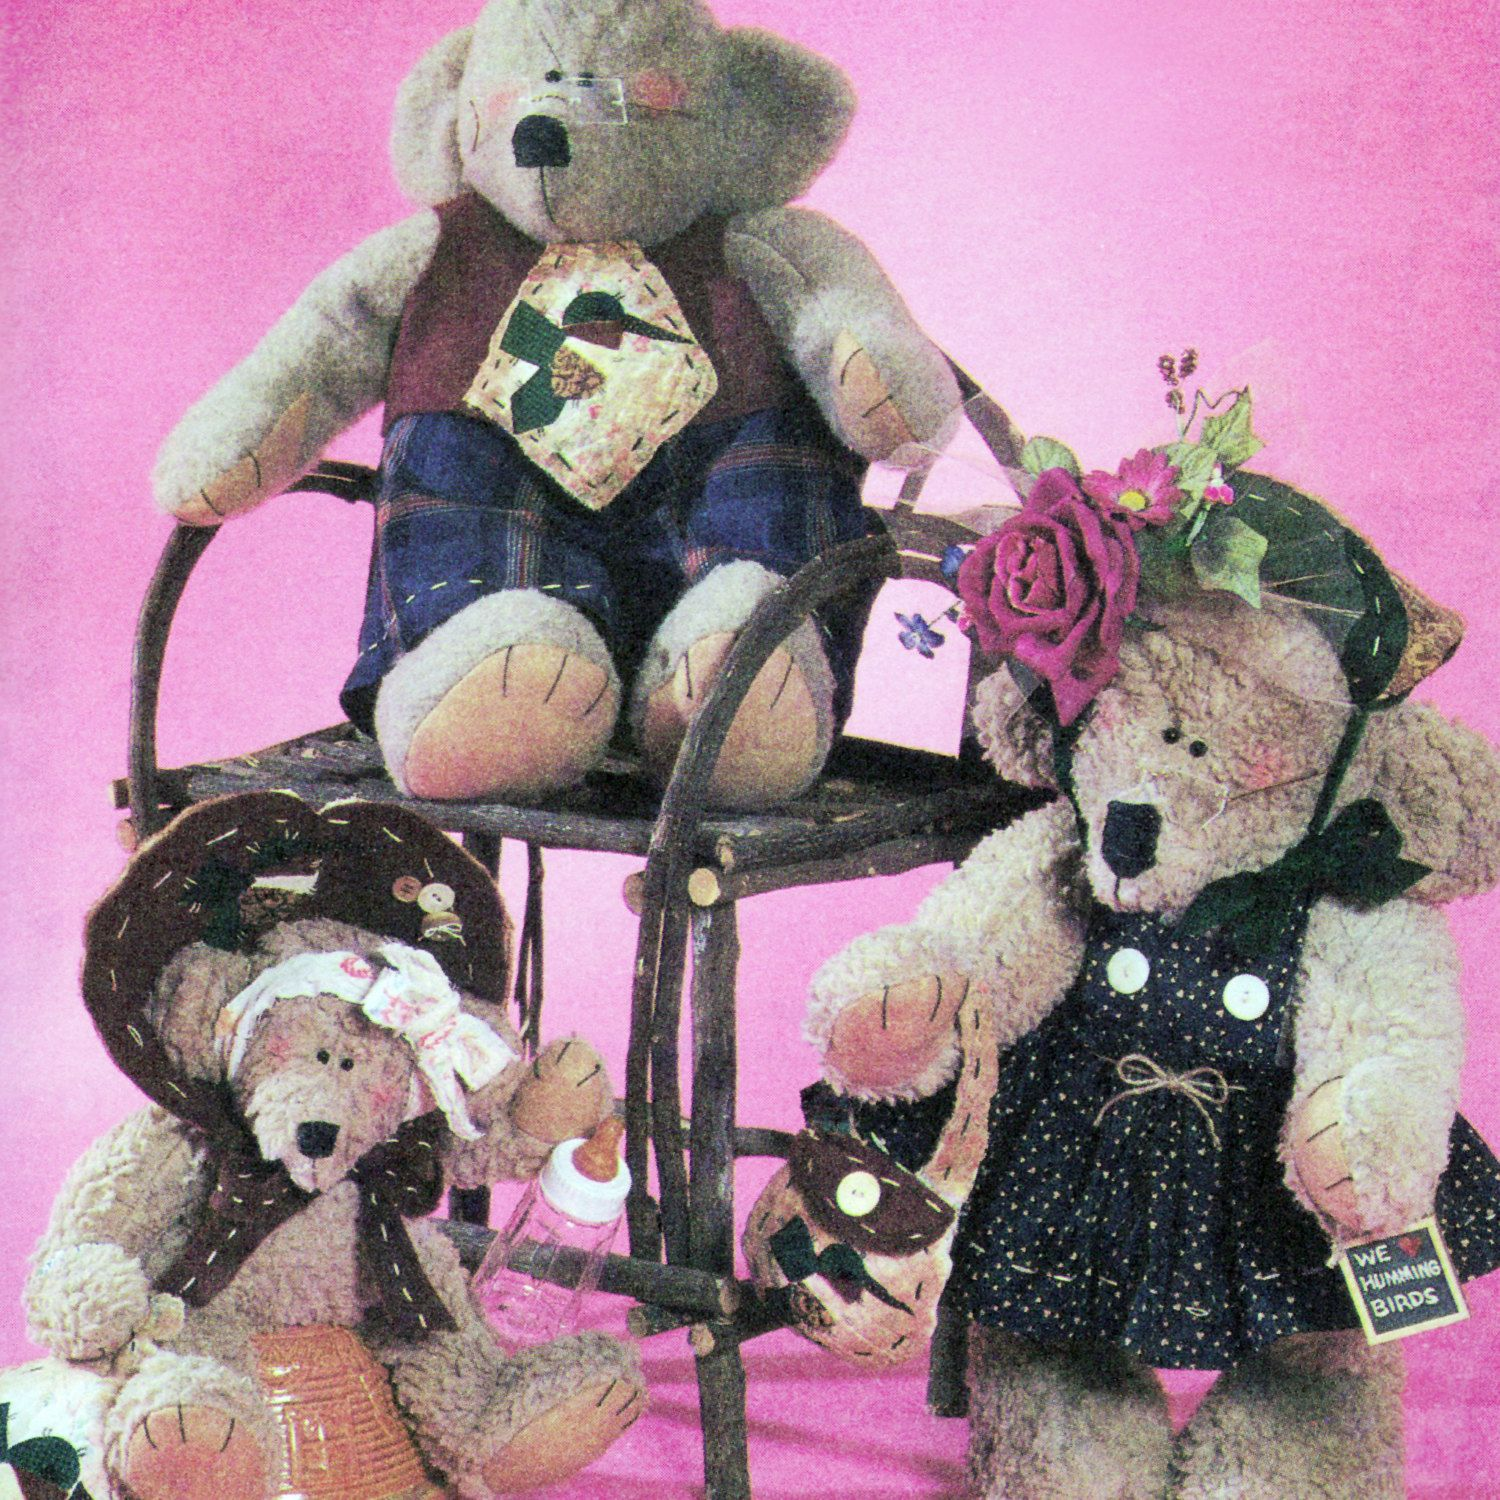 """Vintage 1996 Sweet Teddy Bears and Clothes! Simplicity Crafts Sewing Pattern 7355, """"Dream Babies 'N' Stitches,"""" UNCUT with FACTORY FOLDS by karl79 on Etsy"""